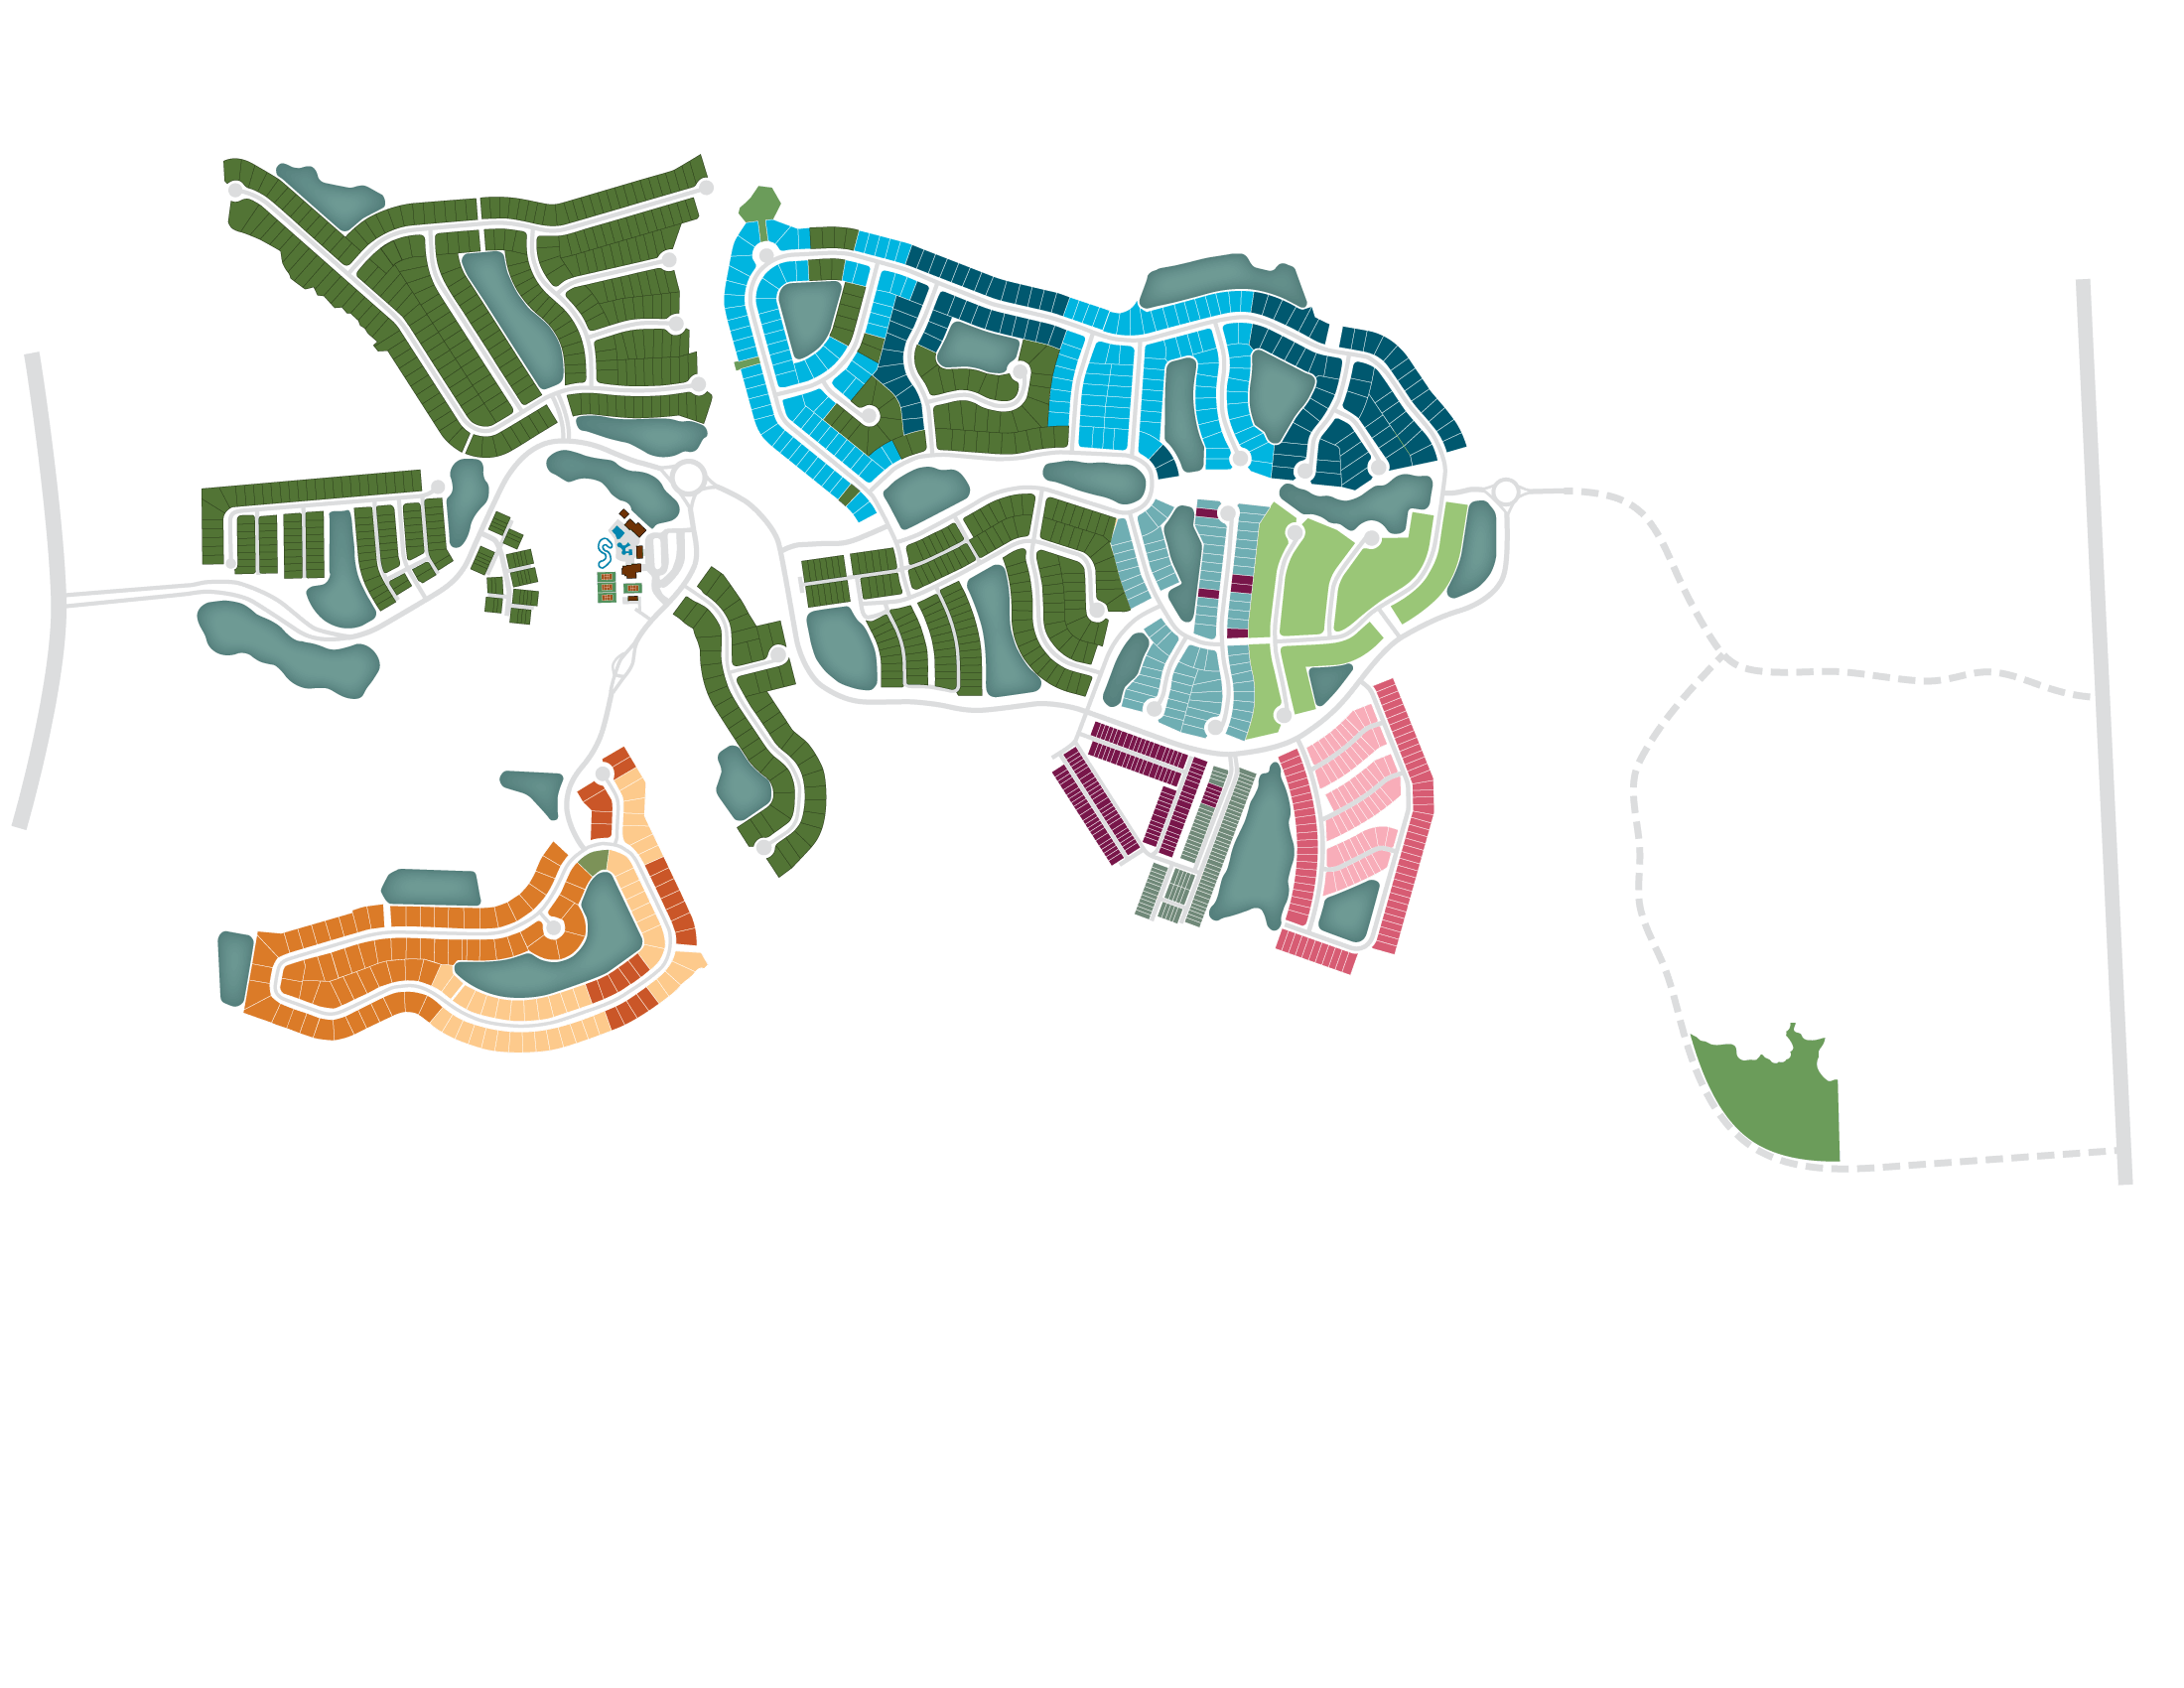 Shearwater site plan graphic showing home builder locations